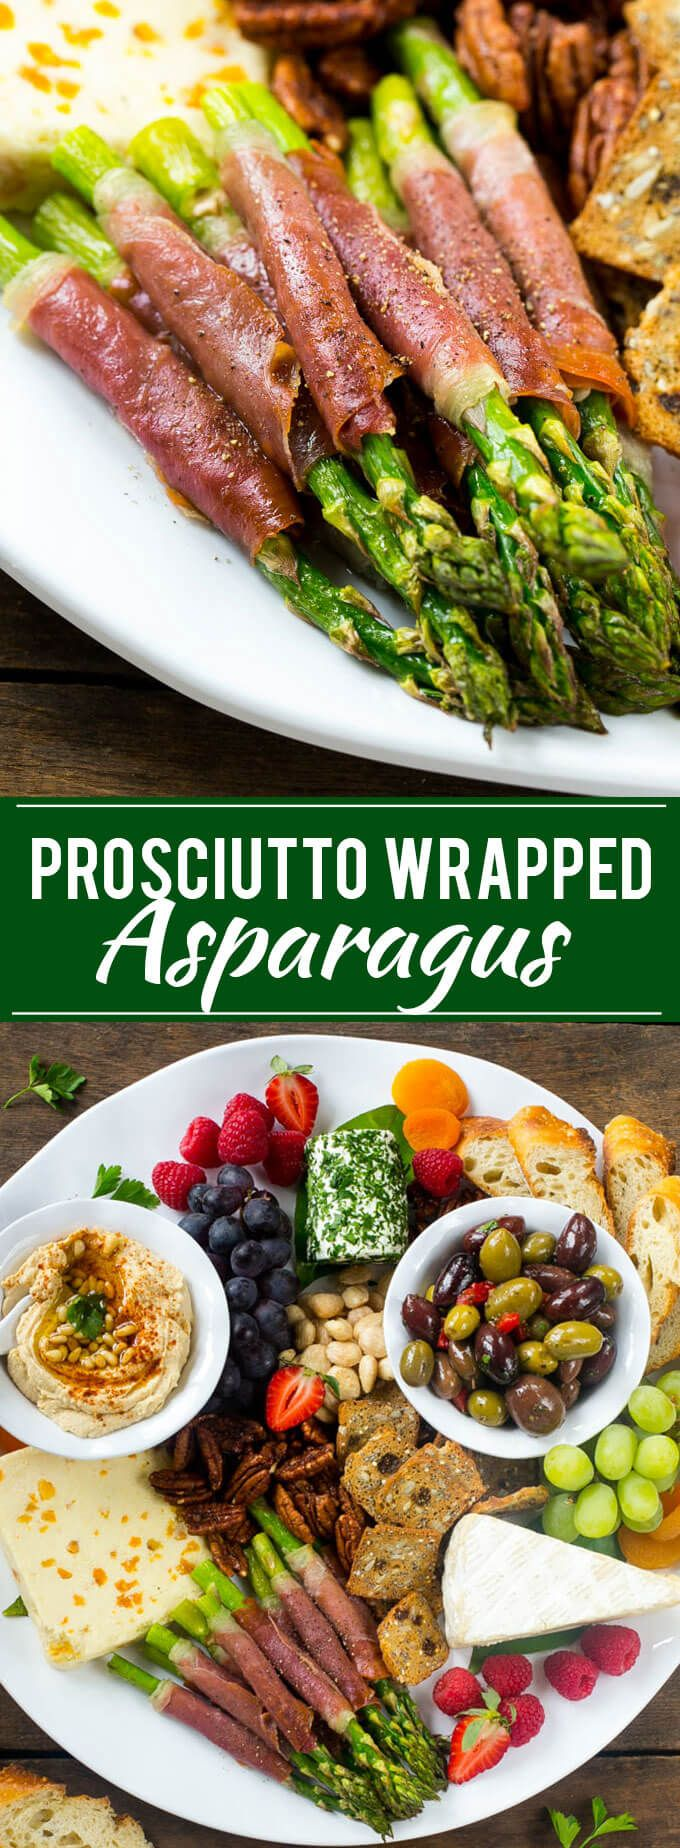 Prosciutto Wrapped Asparagus Recipe | Roasted Asparagus | Asparagus Appetizer | Low Carb Appetizer | Prosciutto Recipe